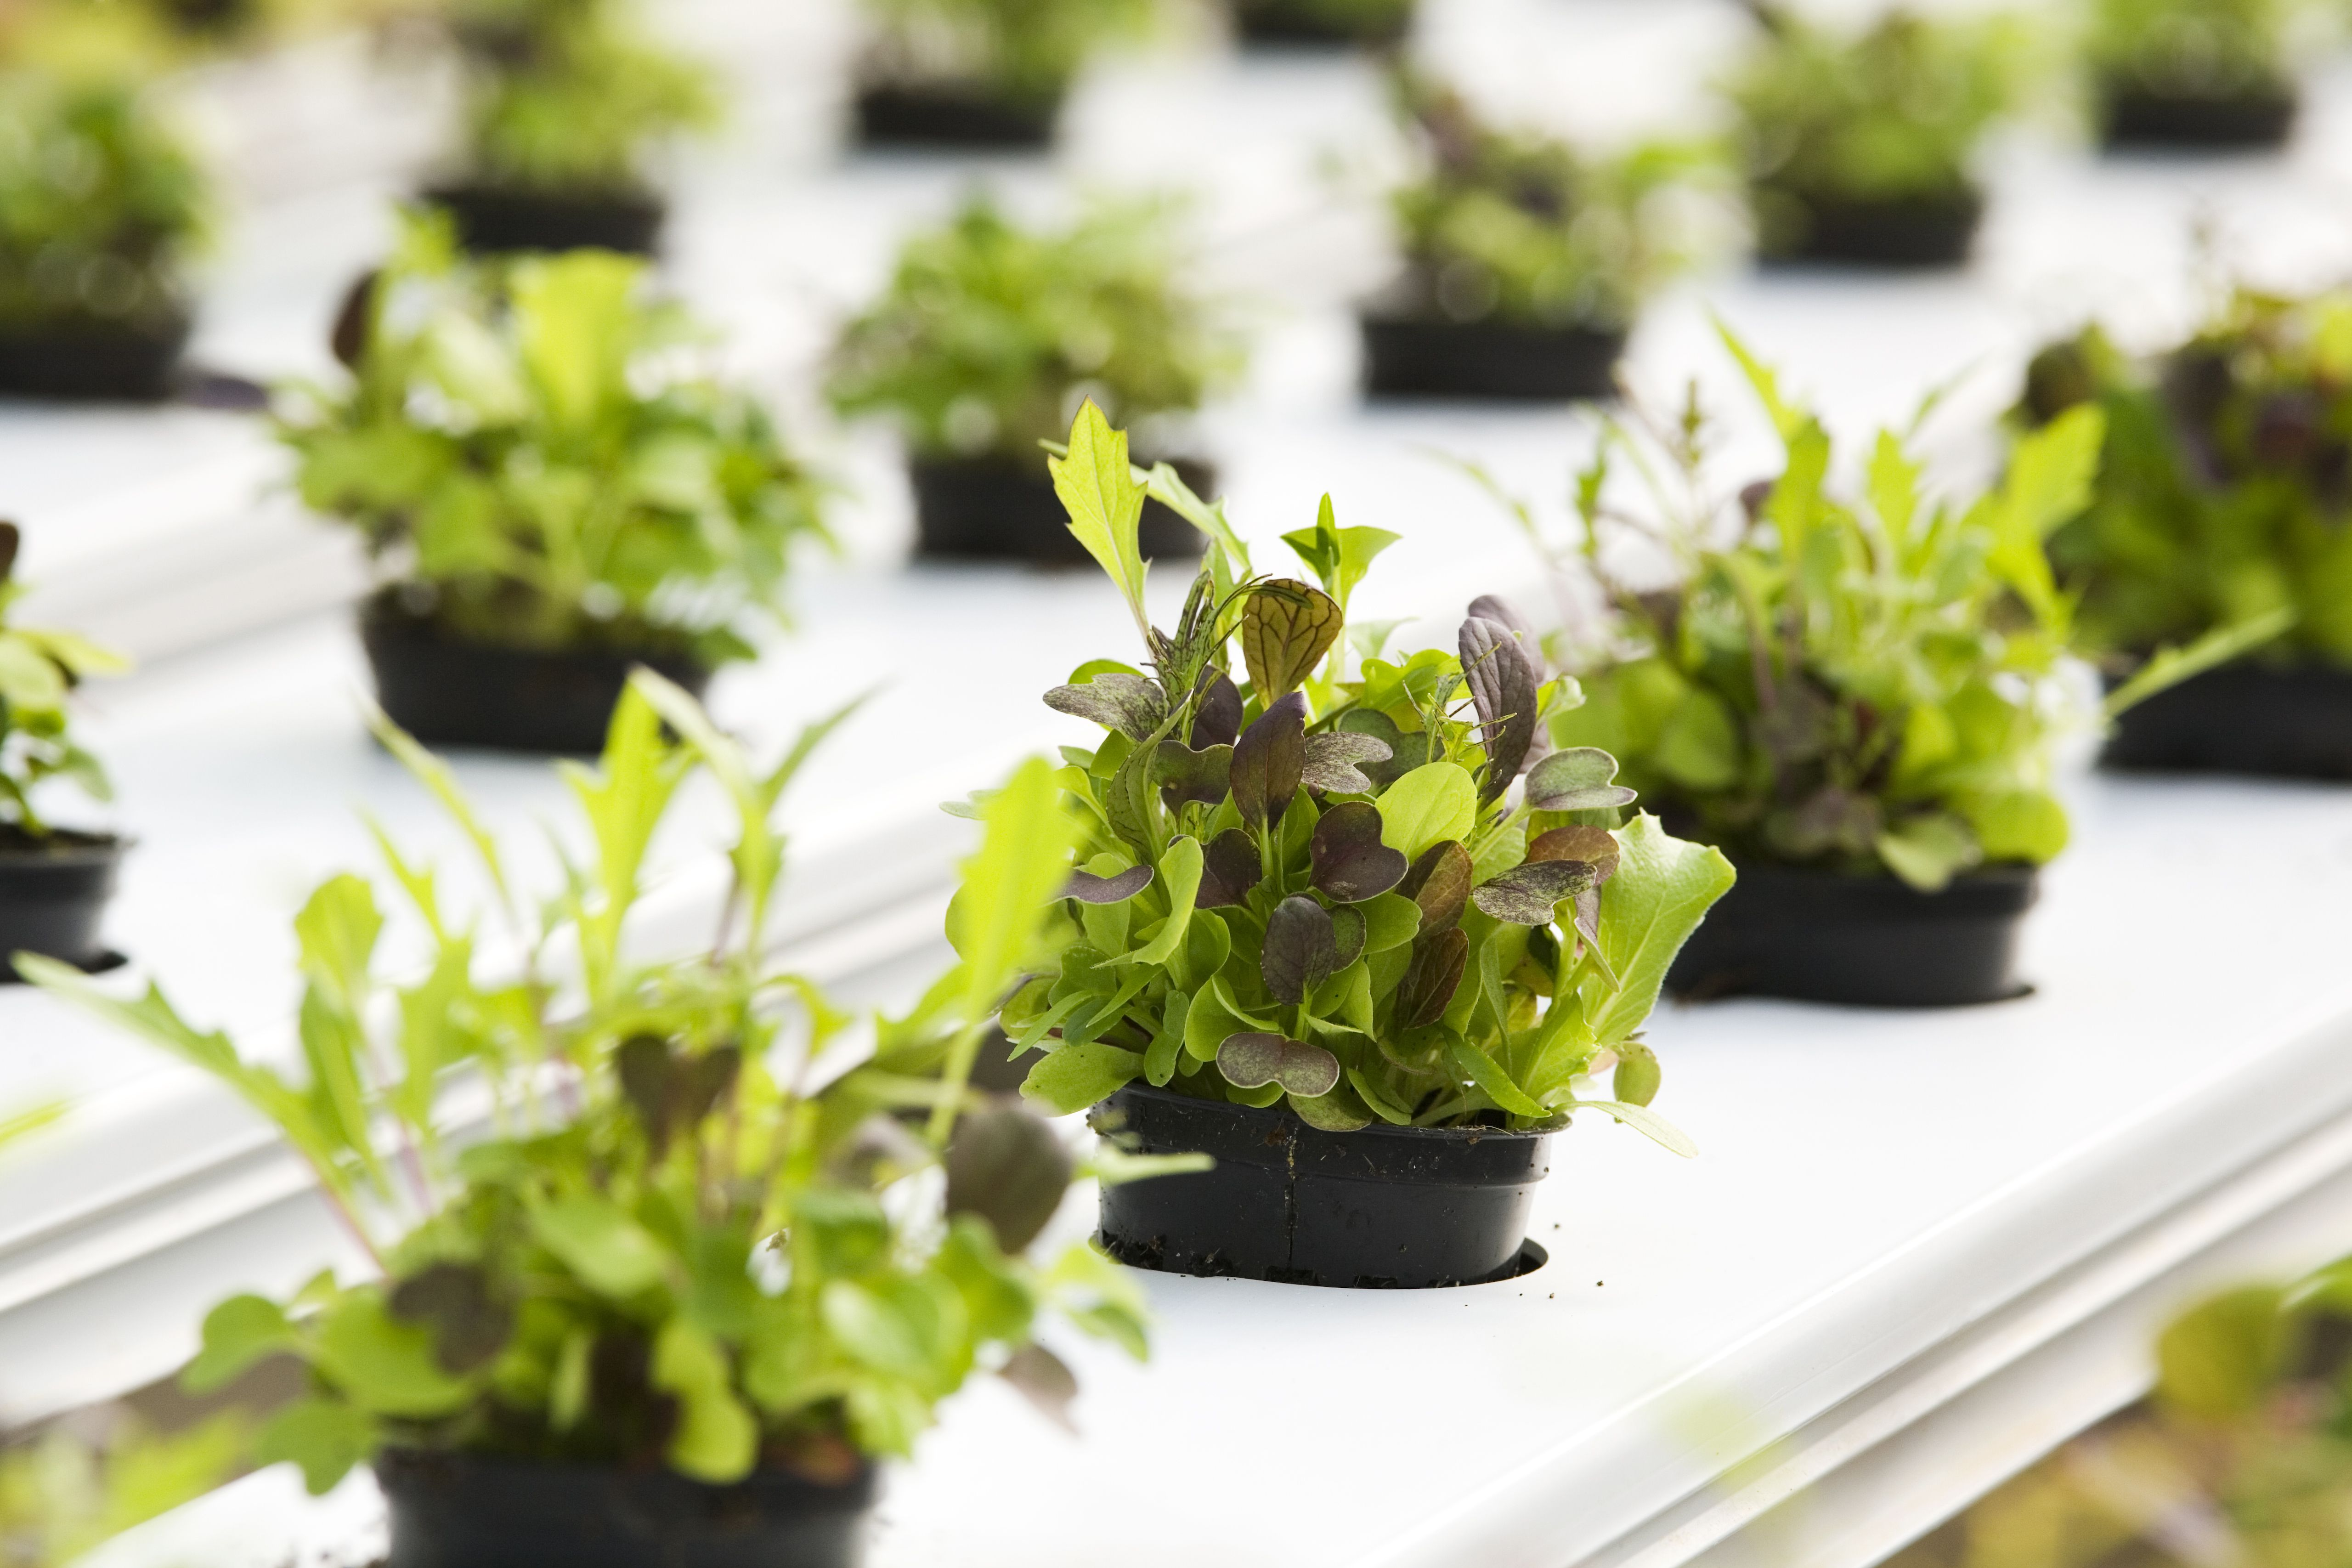 The Best Plants to Grow in Your Hydroponic Garden